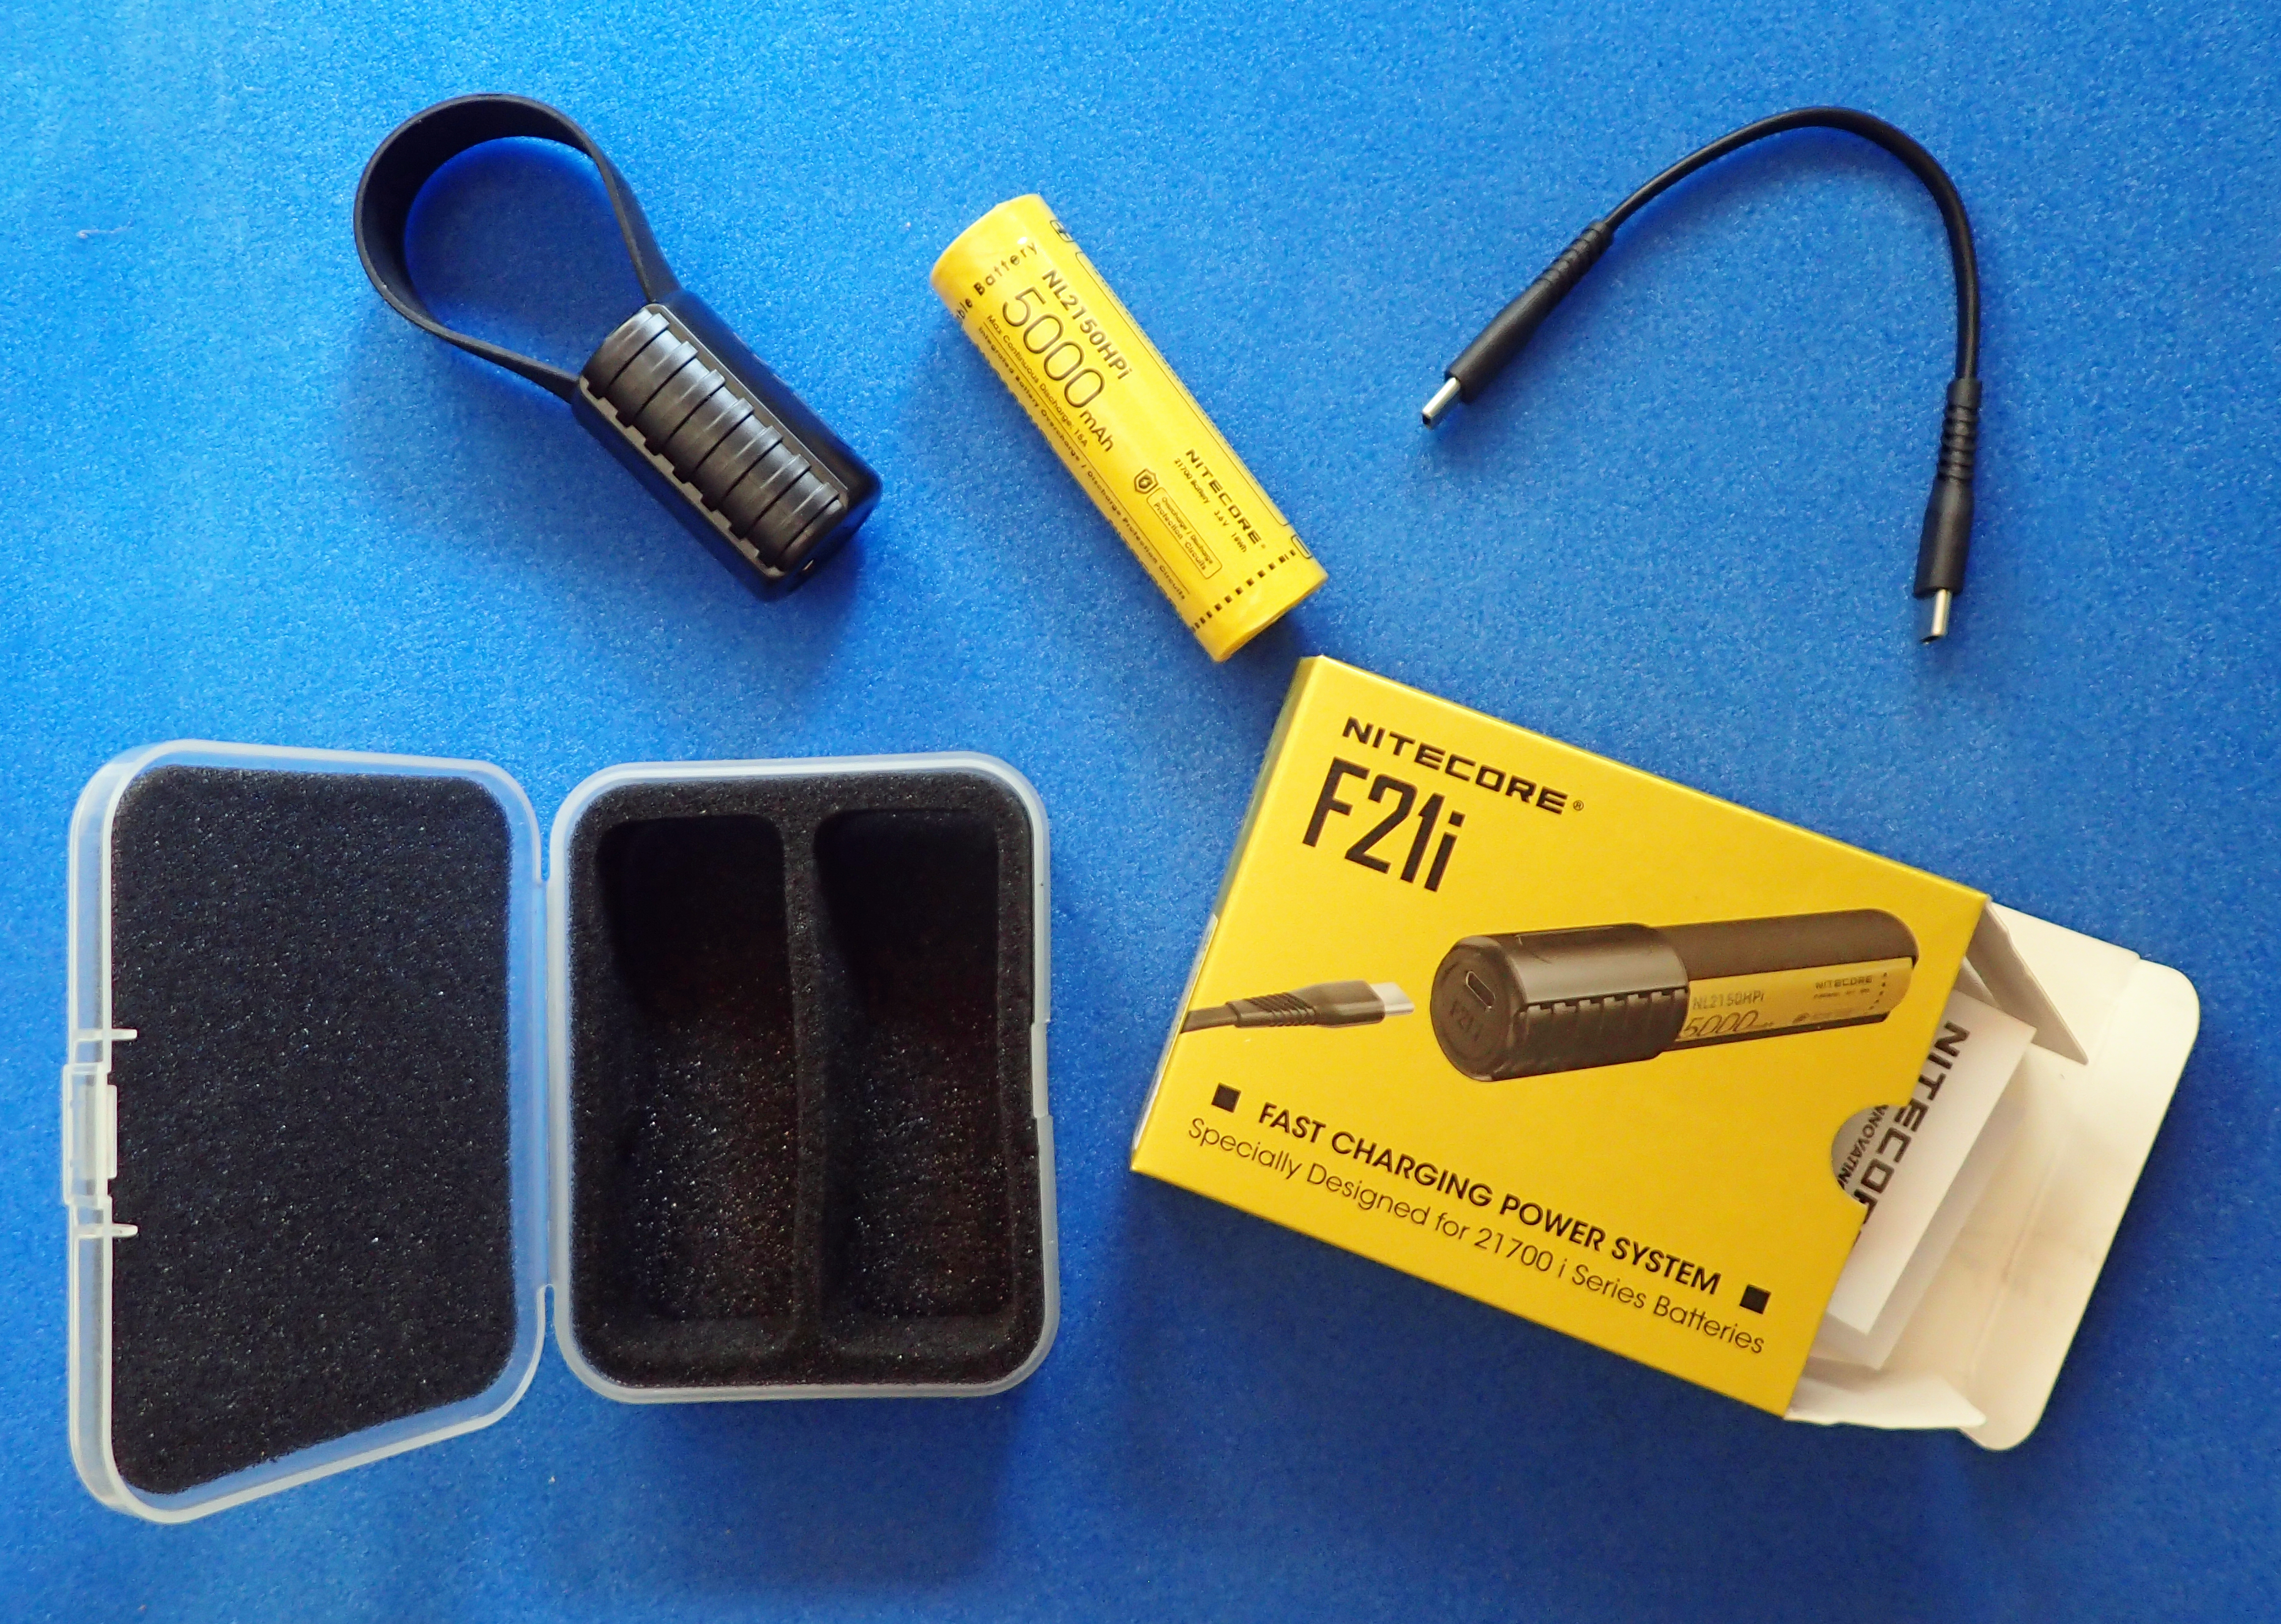 Nitecore F21i comes as a discreet kit and makes a handy addition to the pack on day hikes, and for the frugal energy consumer, multi day hikes too